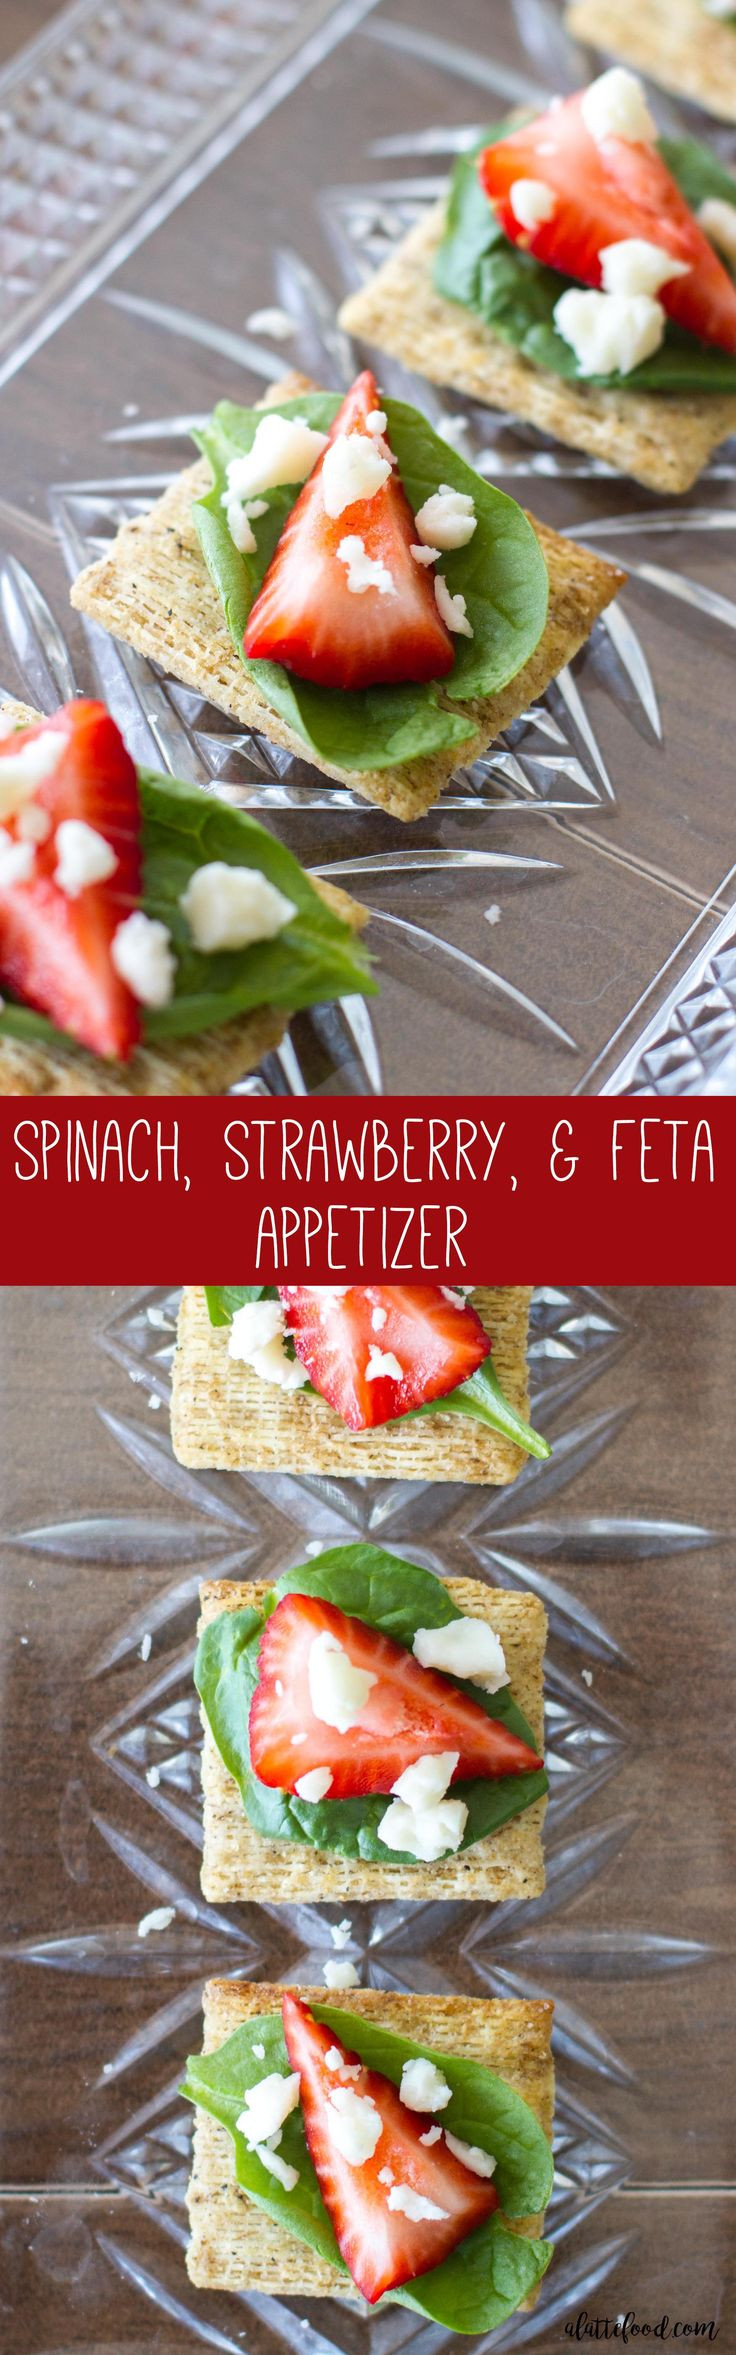 Summer Party Appetizers Ideas  17 Best ideas about Summer Party Appetizers on Pinterest